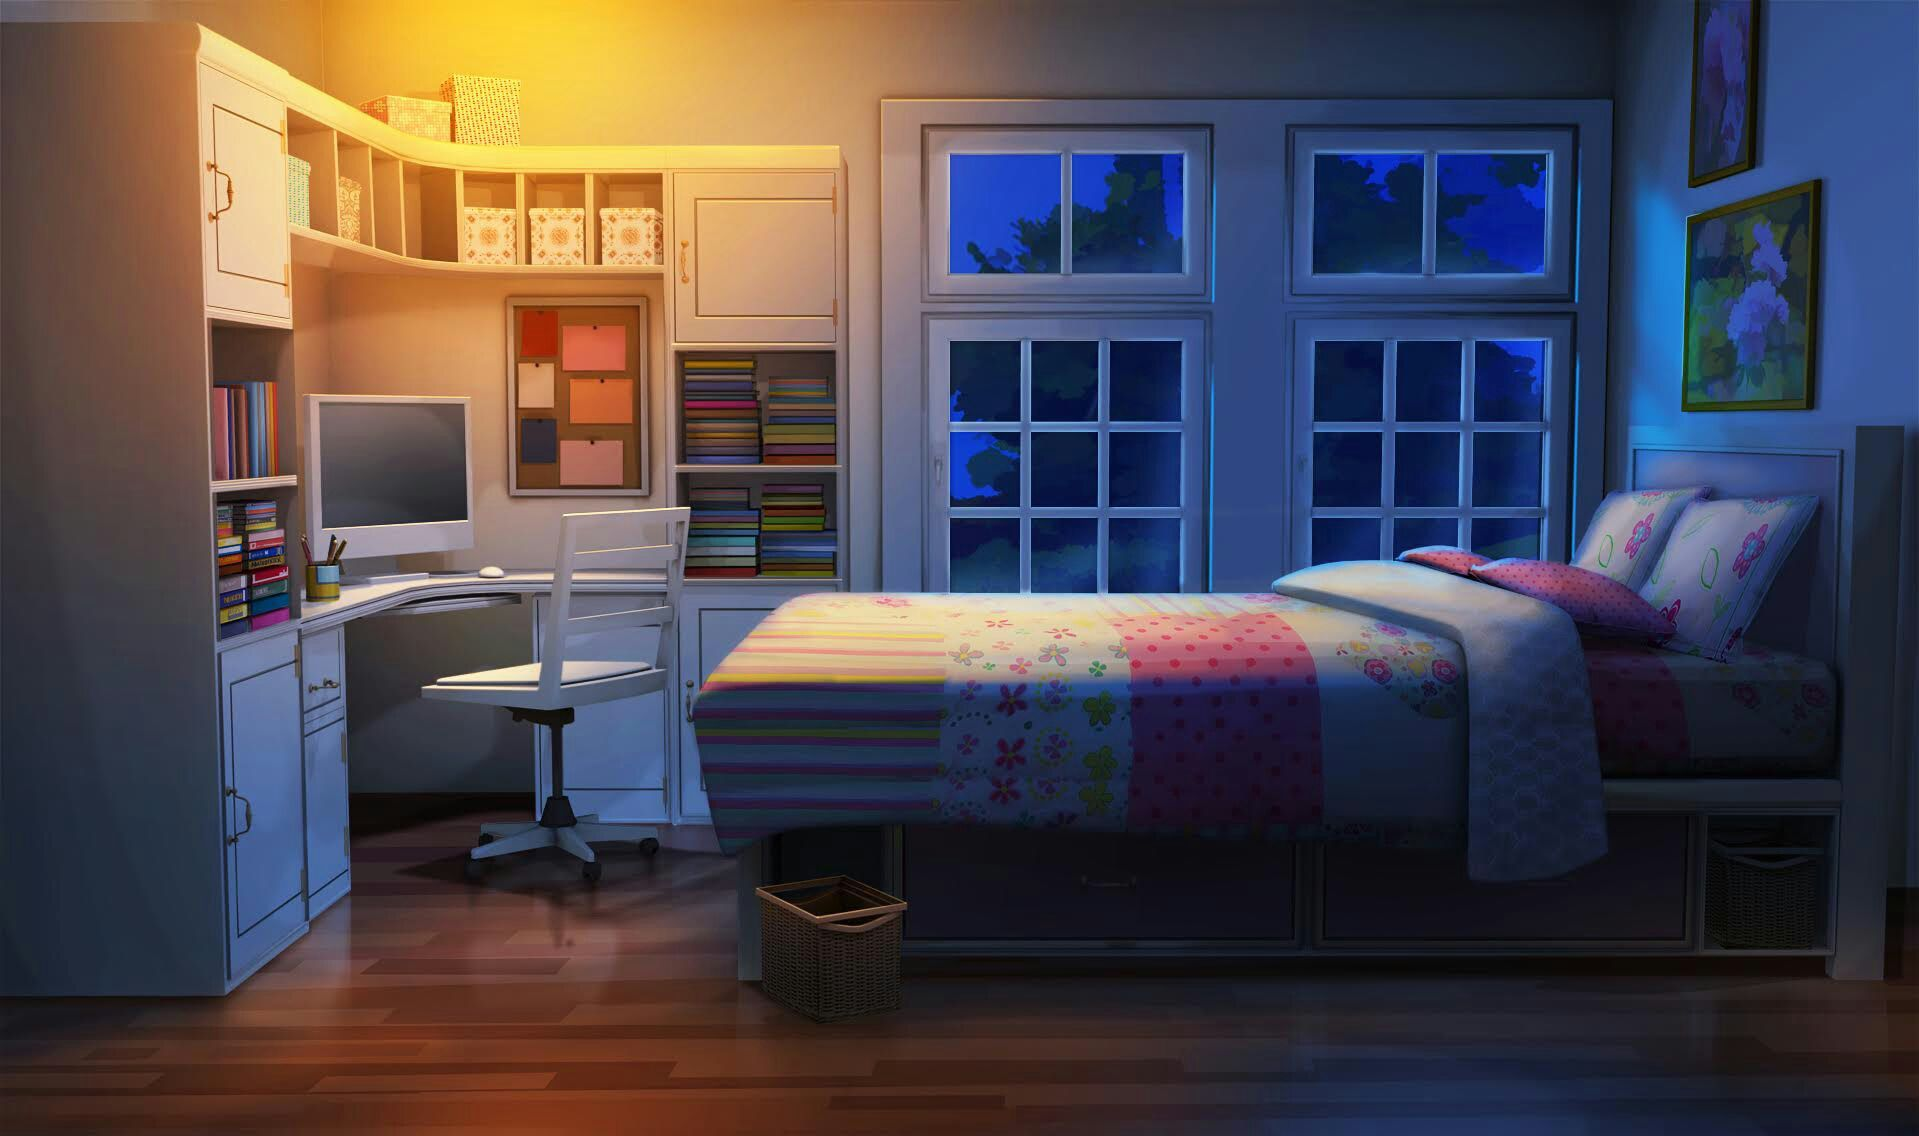 Pin On Backgrounds Bedroom background for gacha